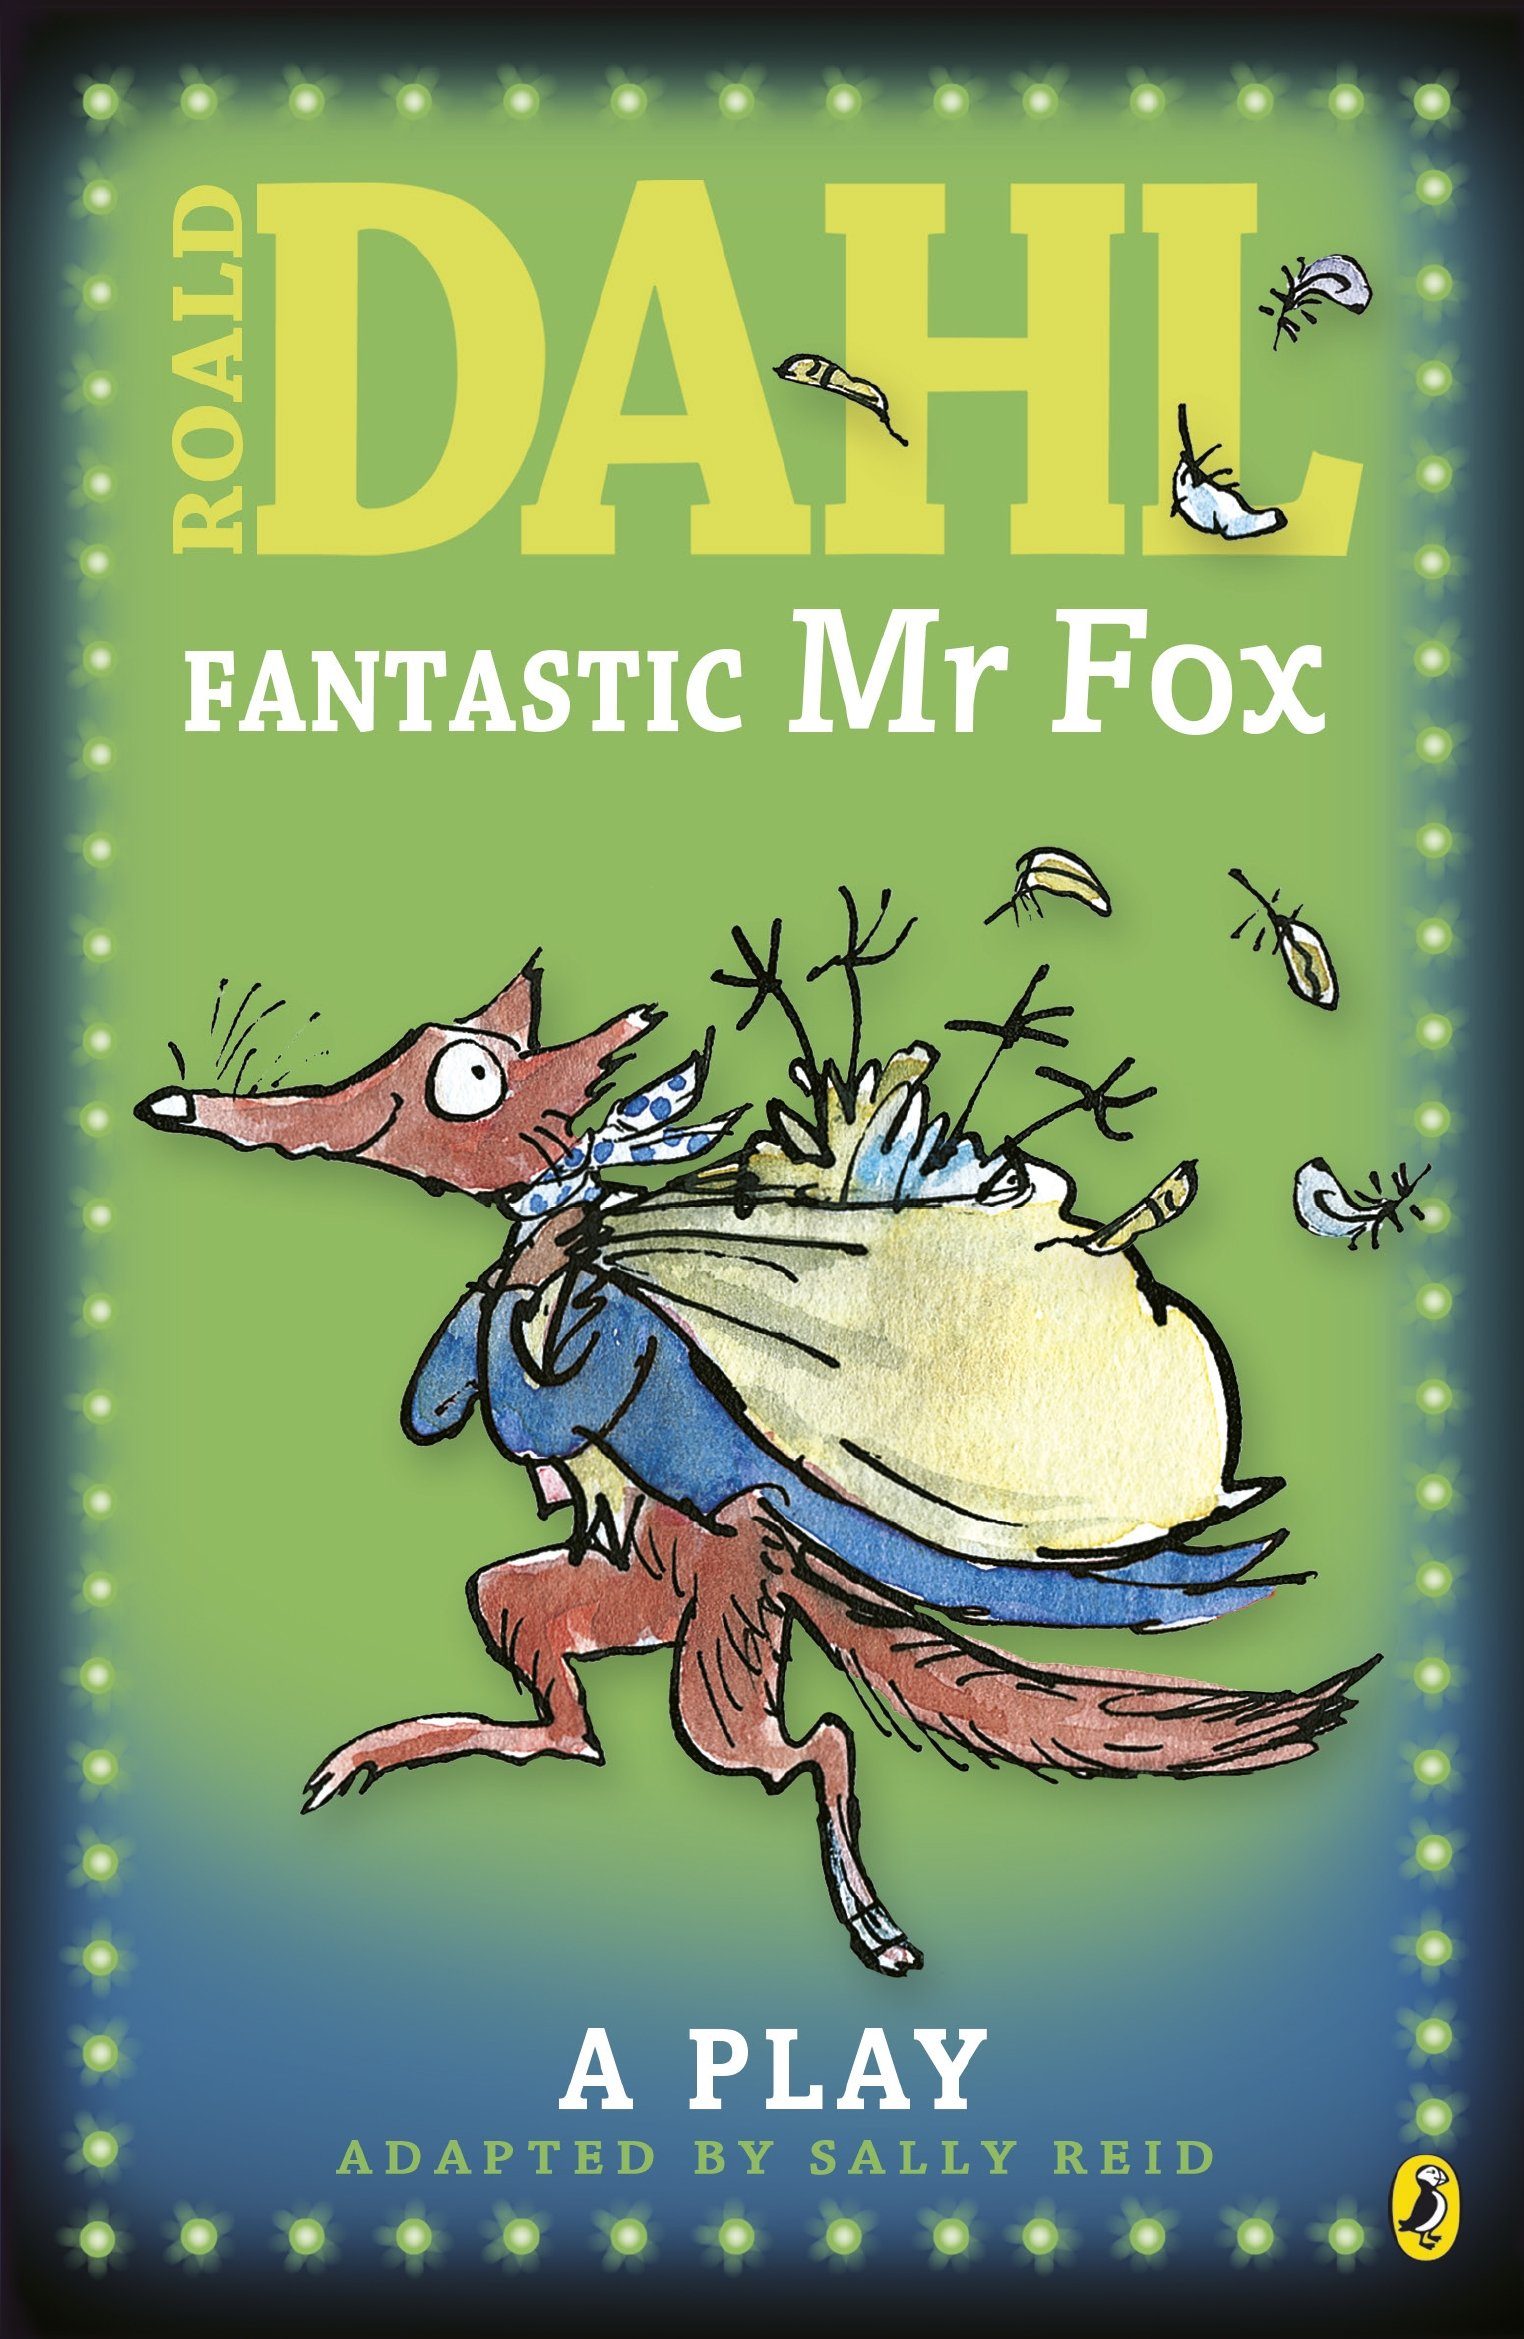 Fantastic Mr Fox Plays For Children A Play Puffin Story Books Amazon Co Uk Dahl Roald Reid Sally Books